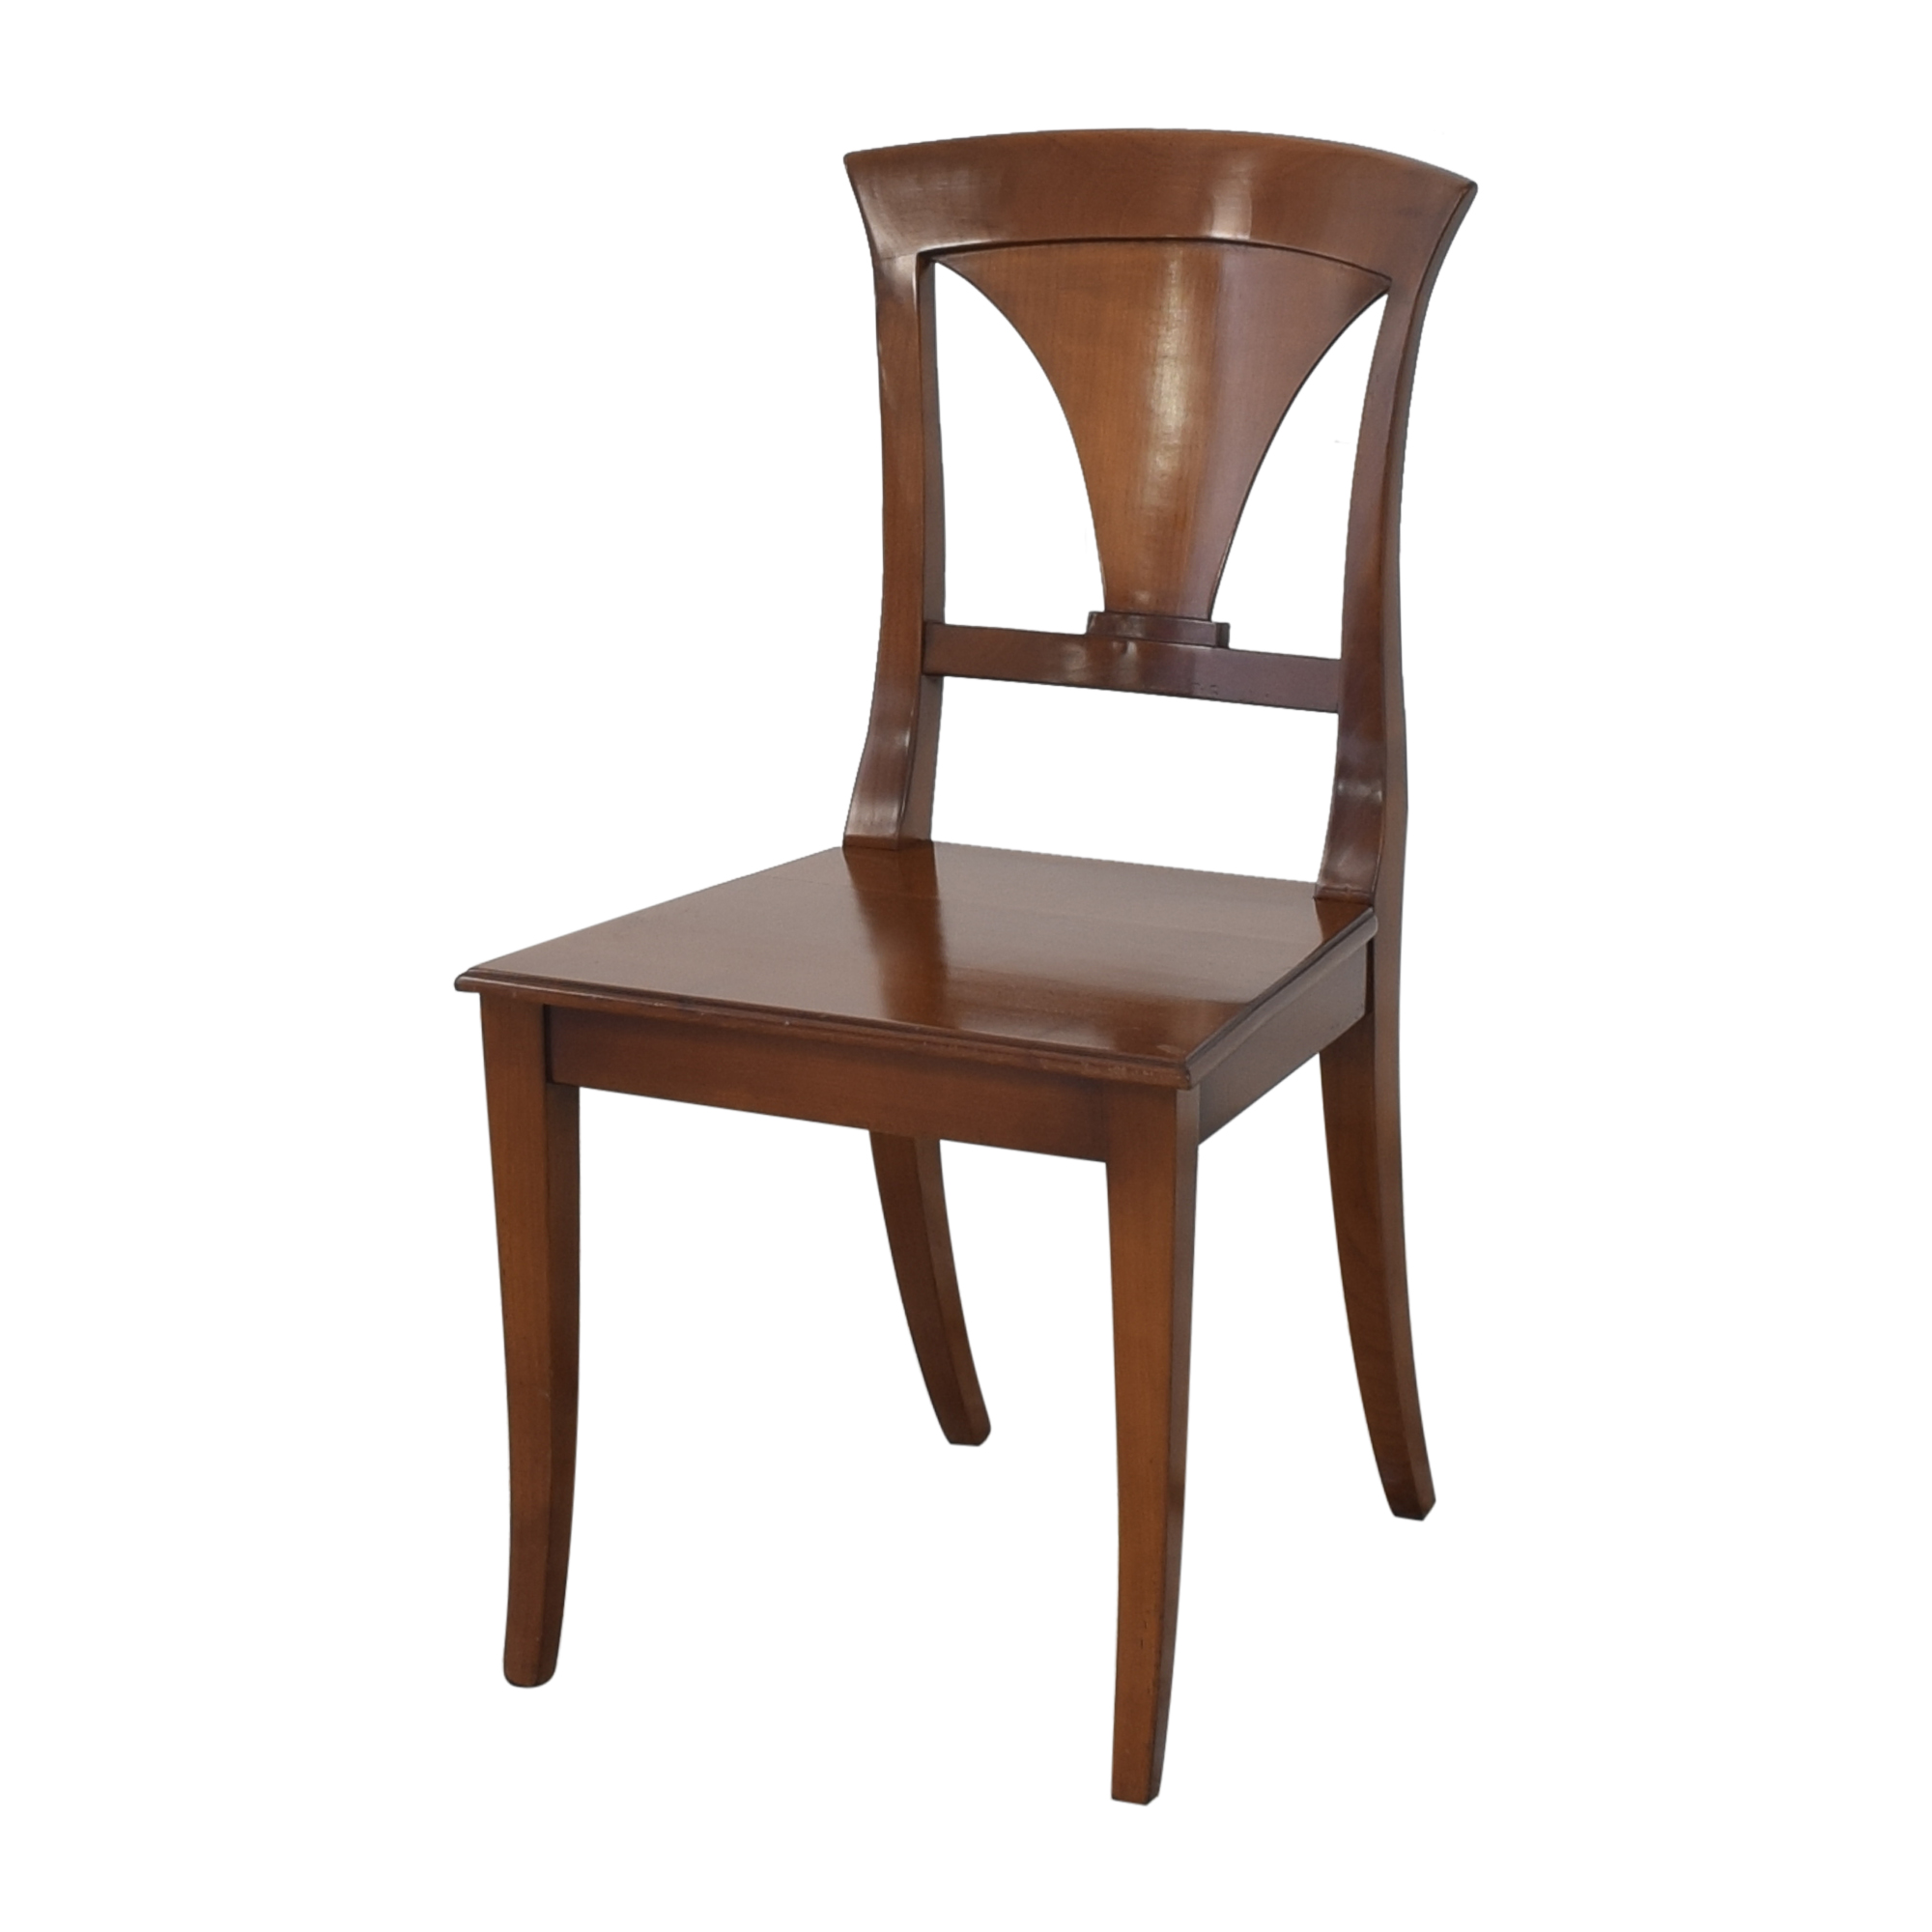 Pfister Pfister Swiss Style Dining Chairs price